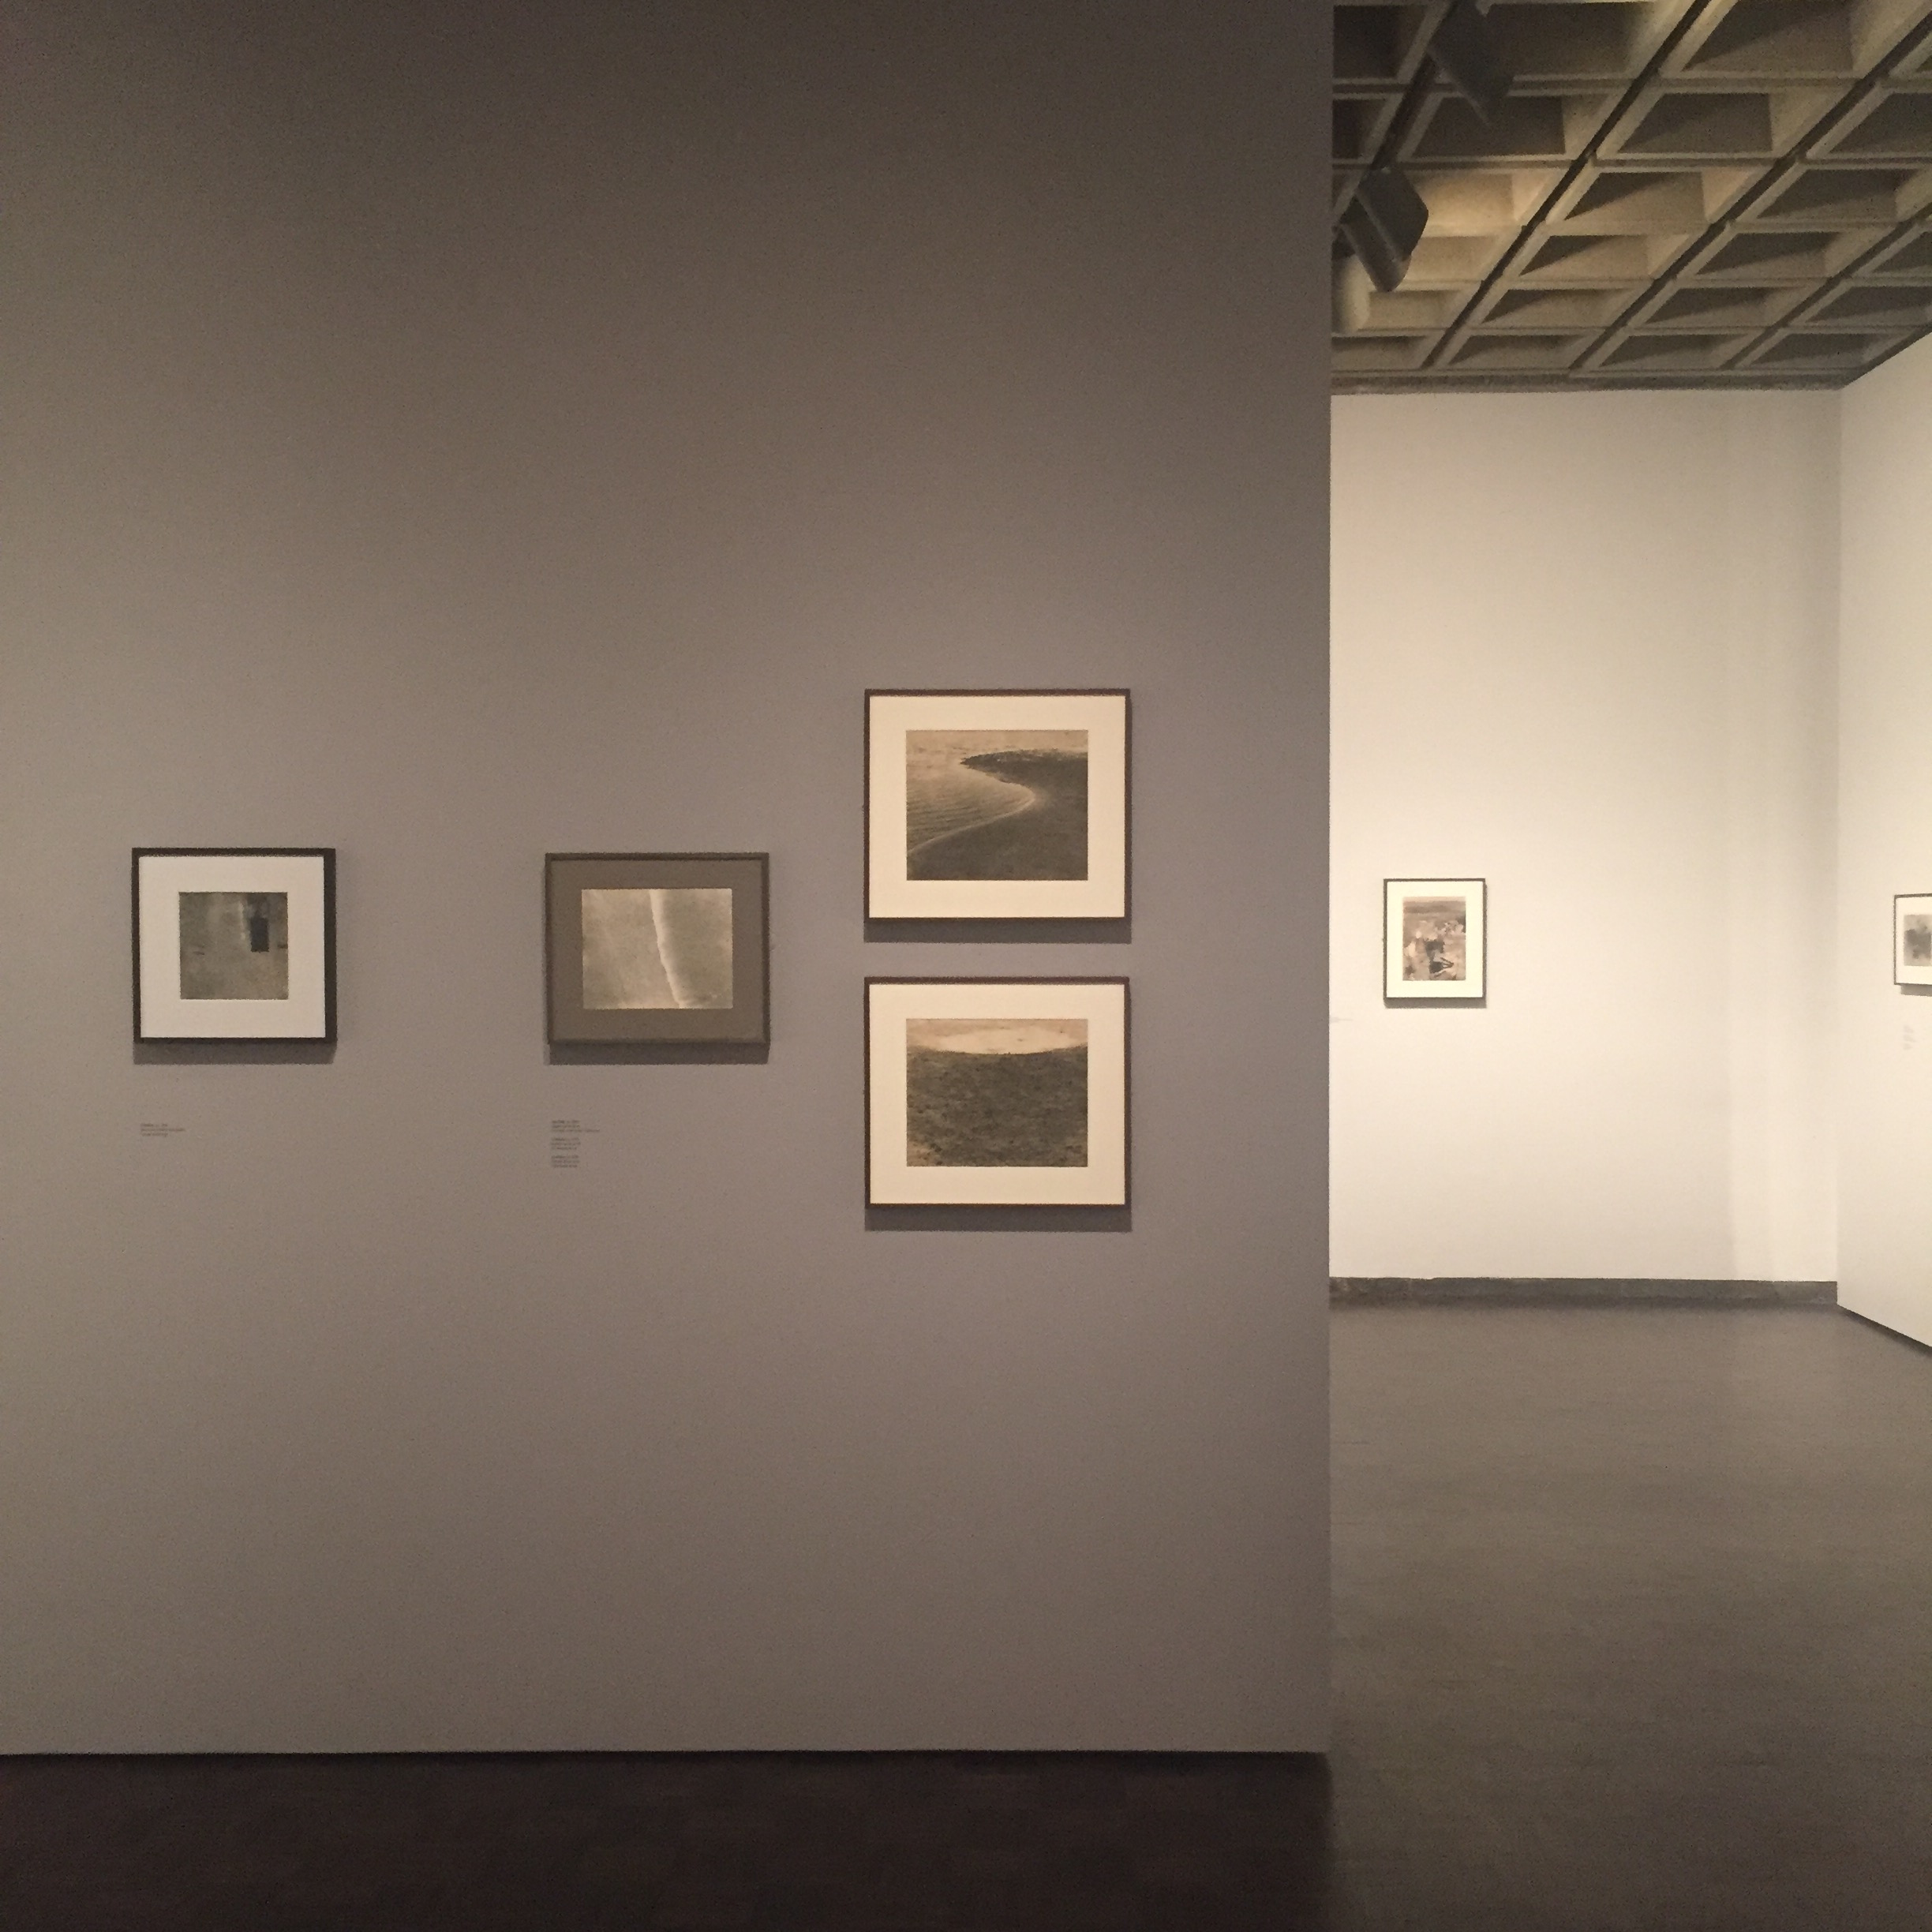 Exhibition view, Nasreen Mohamedi at The Met Breuer, New York. Photo: Anna Dickie.